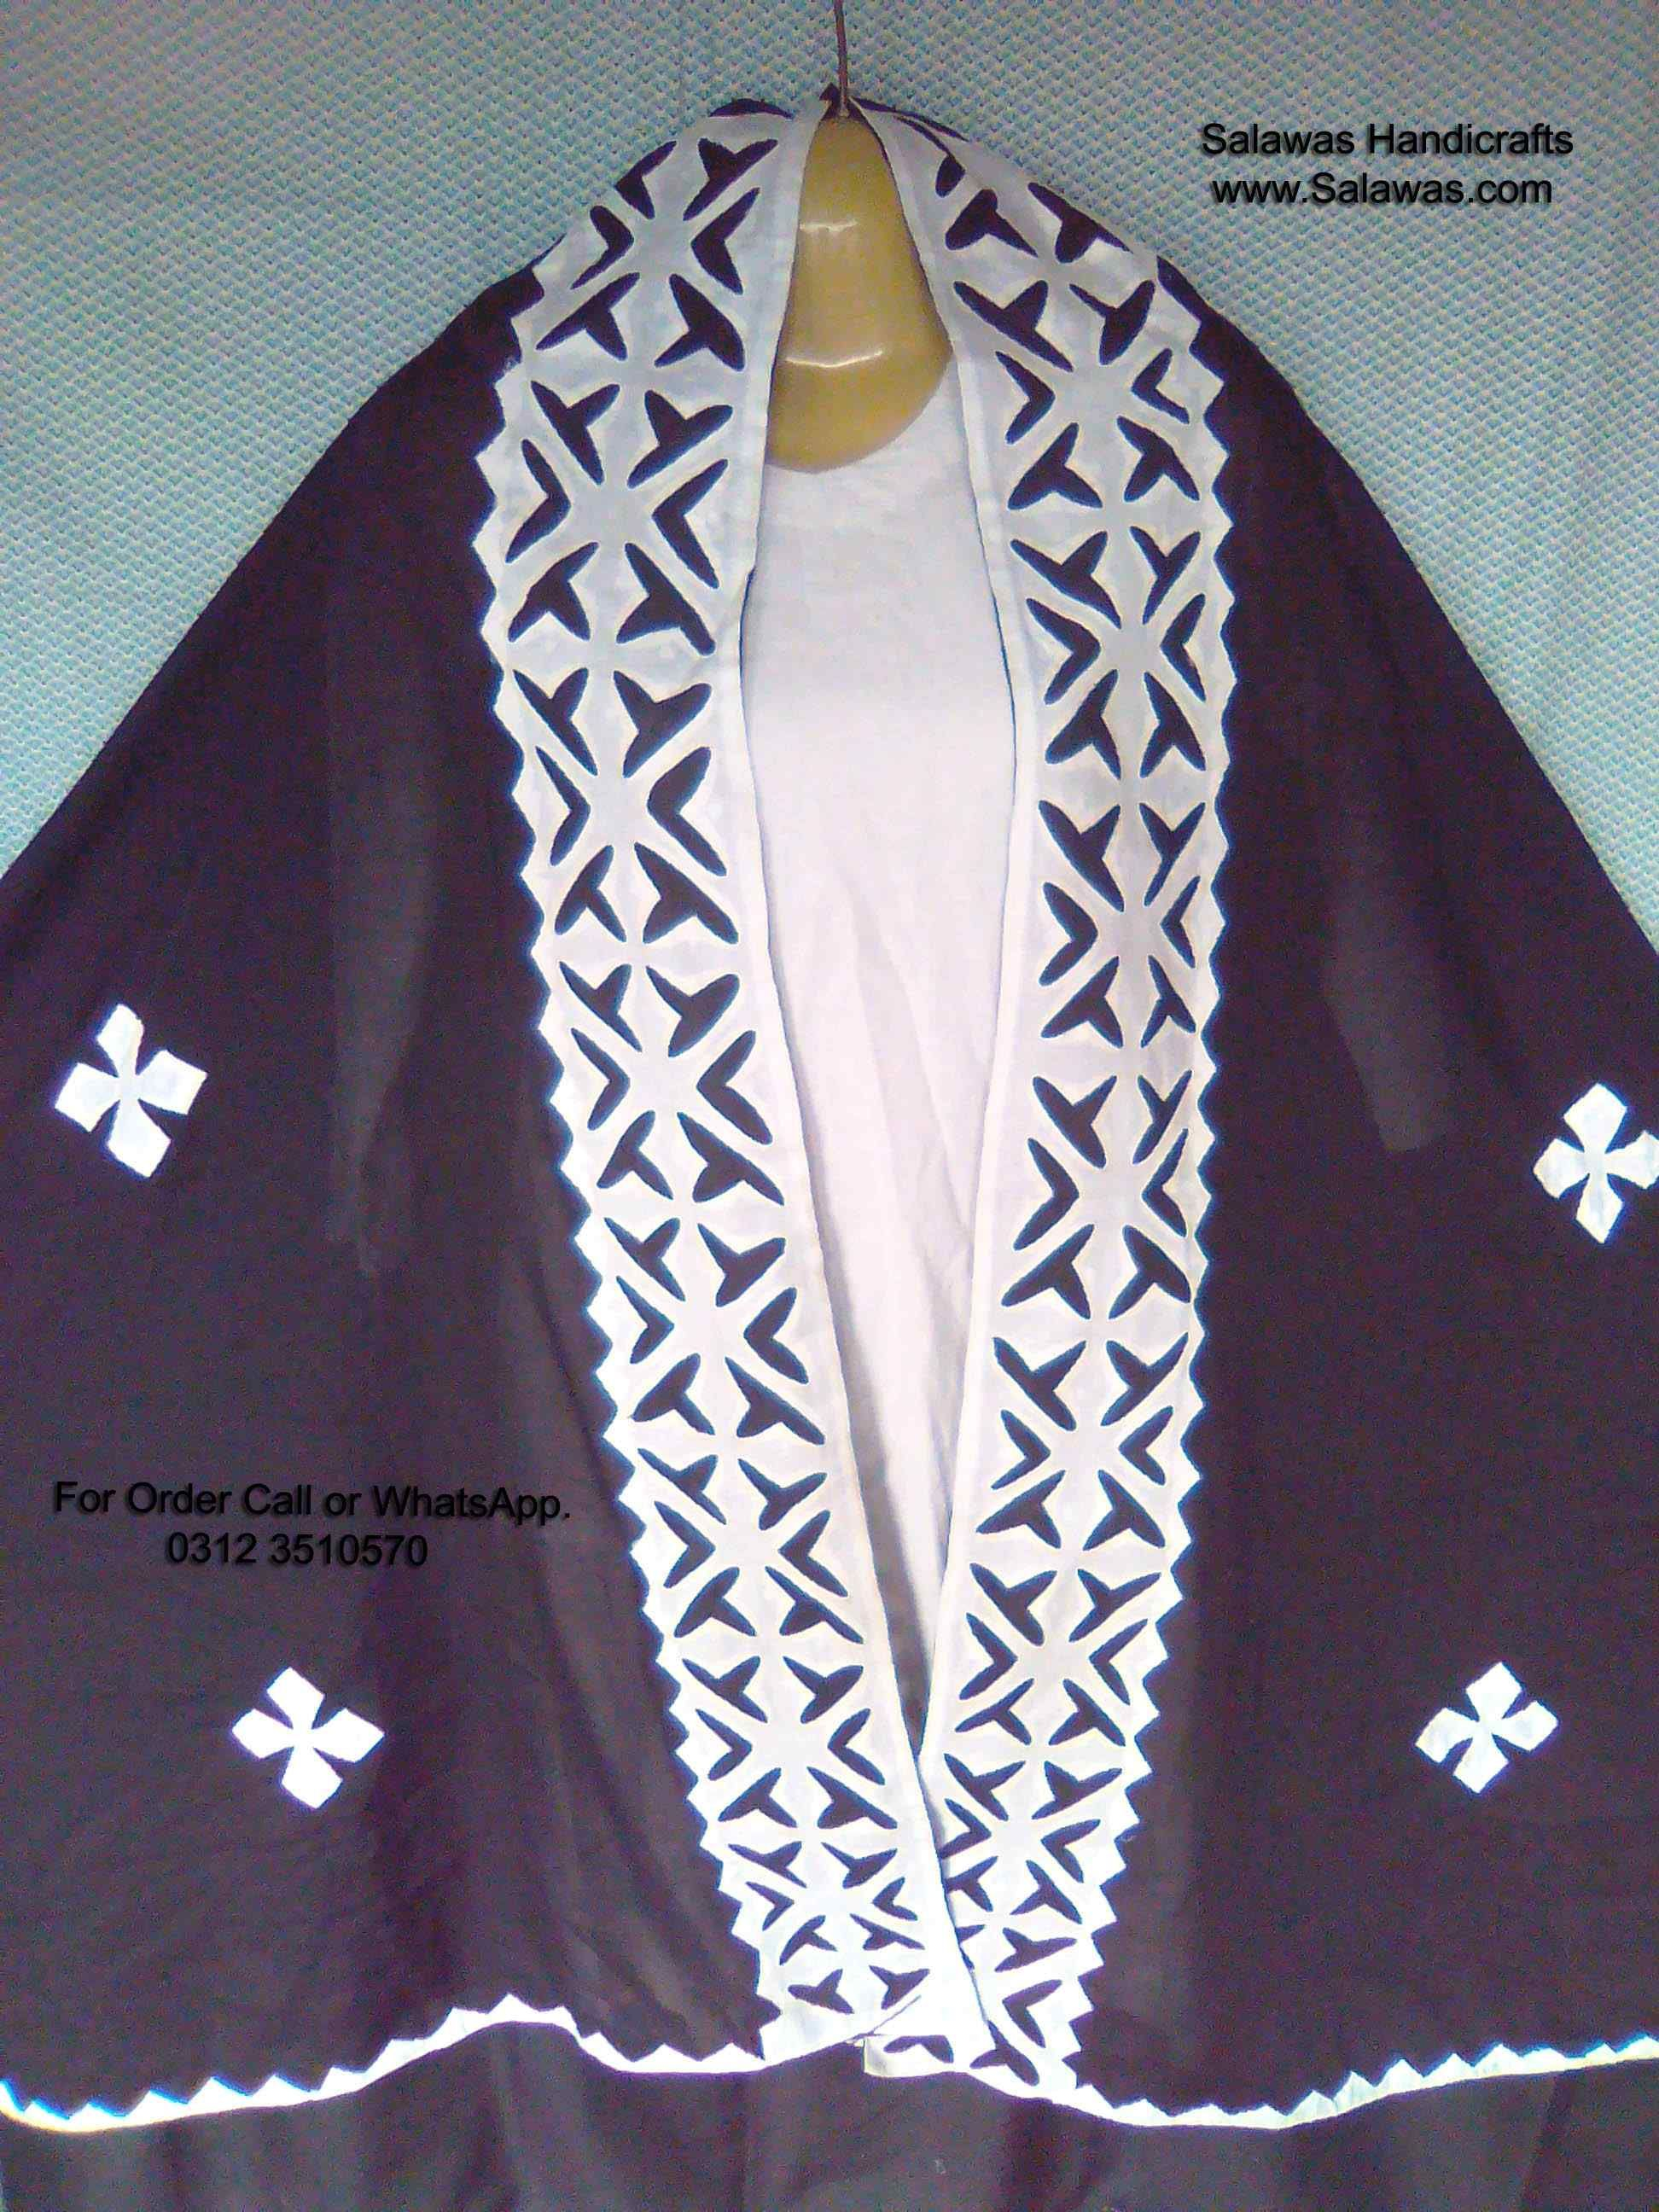 6dcdacf3f80 The Best Pakistani handmade shawls New designs available online for sale